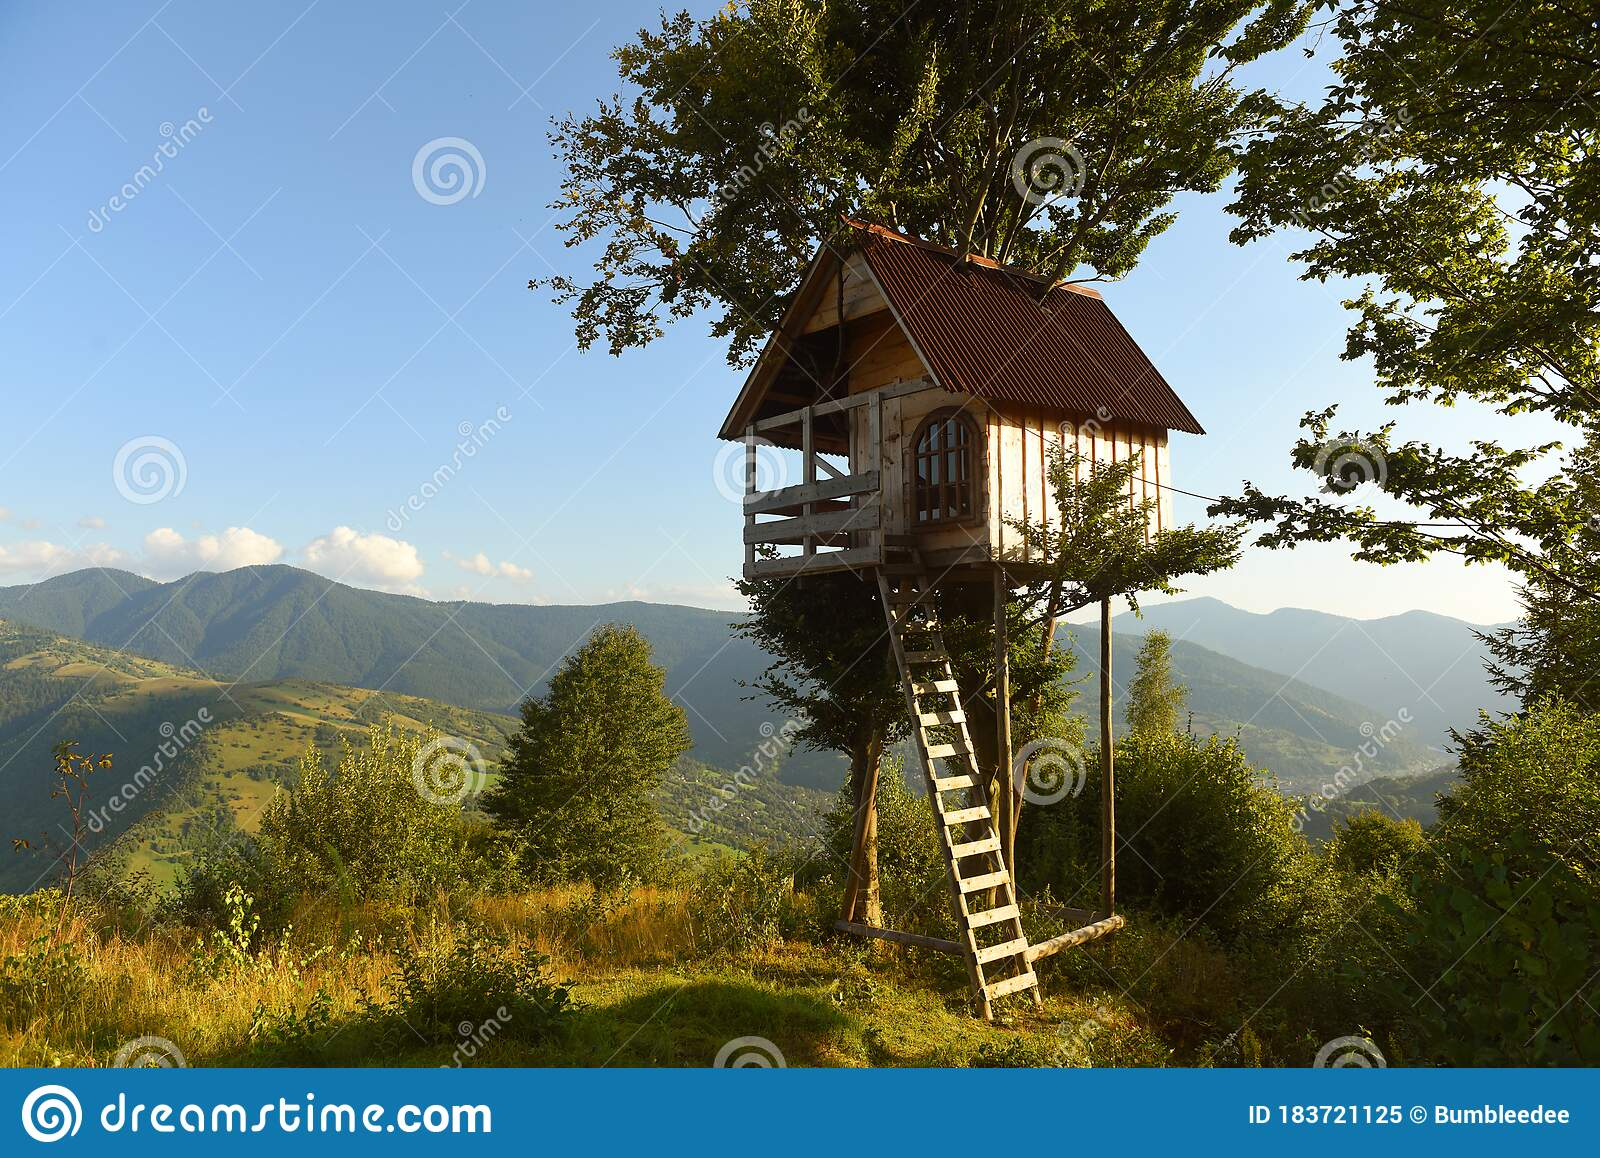 Tree House In The Mountains A Children S Treehouse Stock Image Image Of Kids Building 183721125